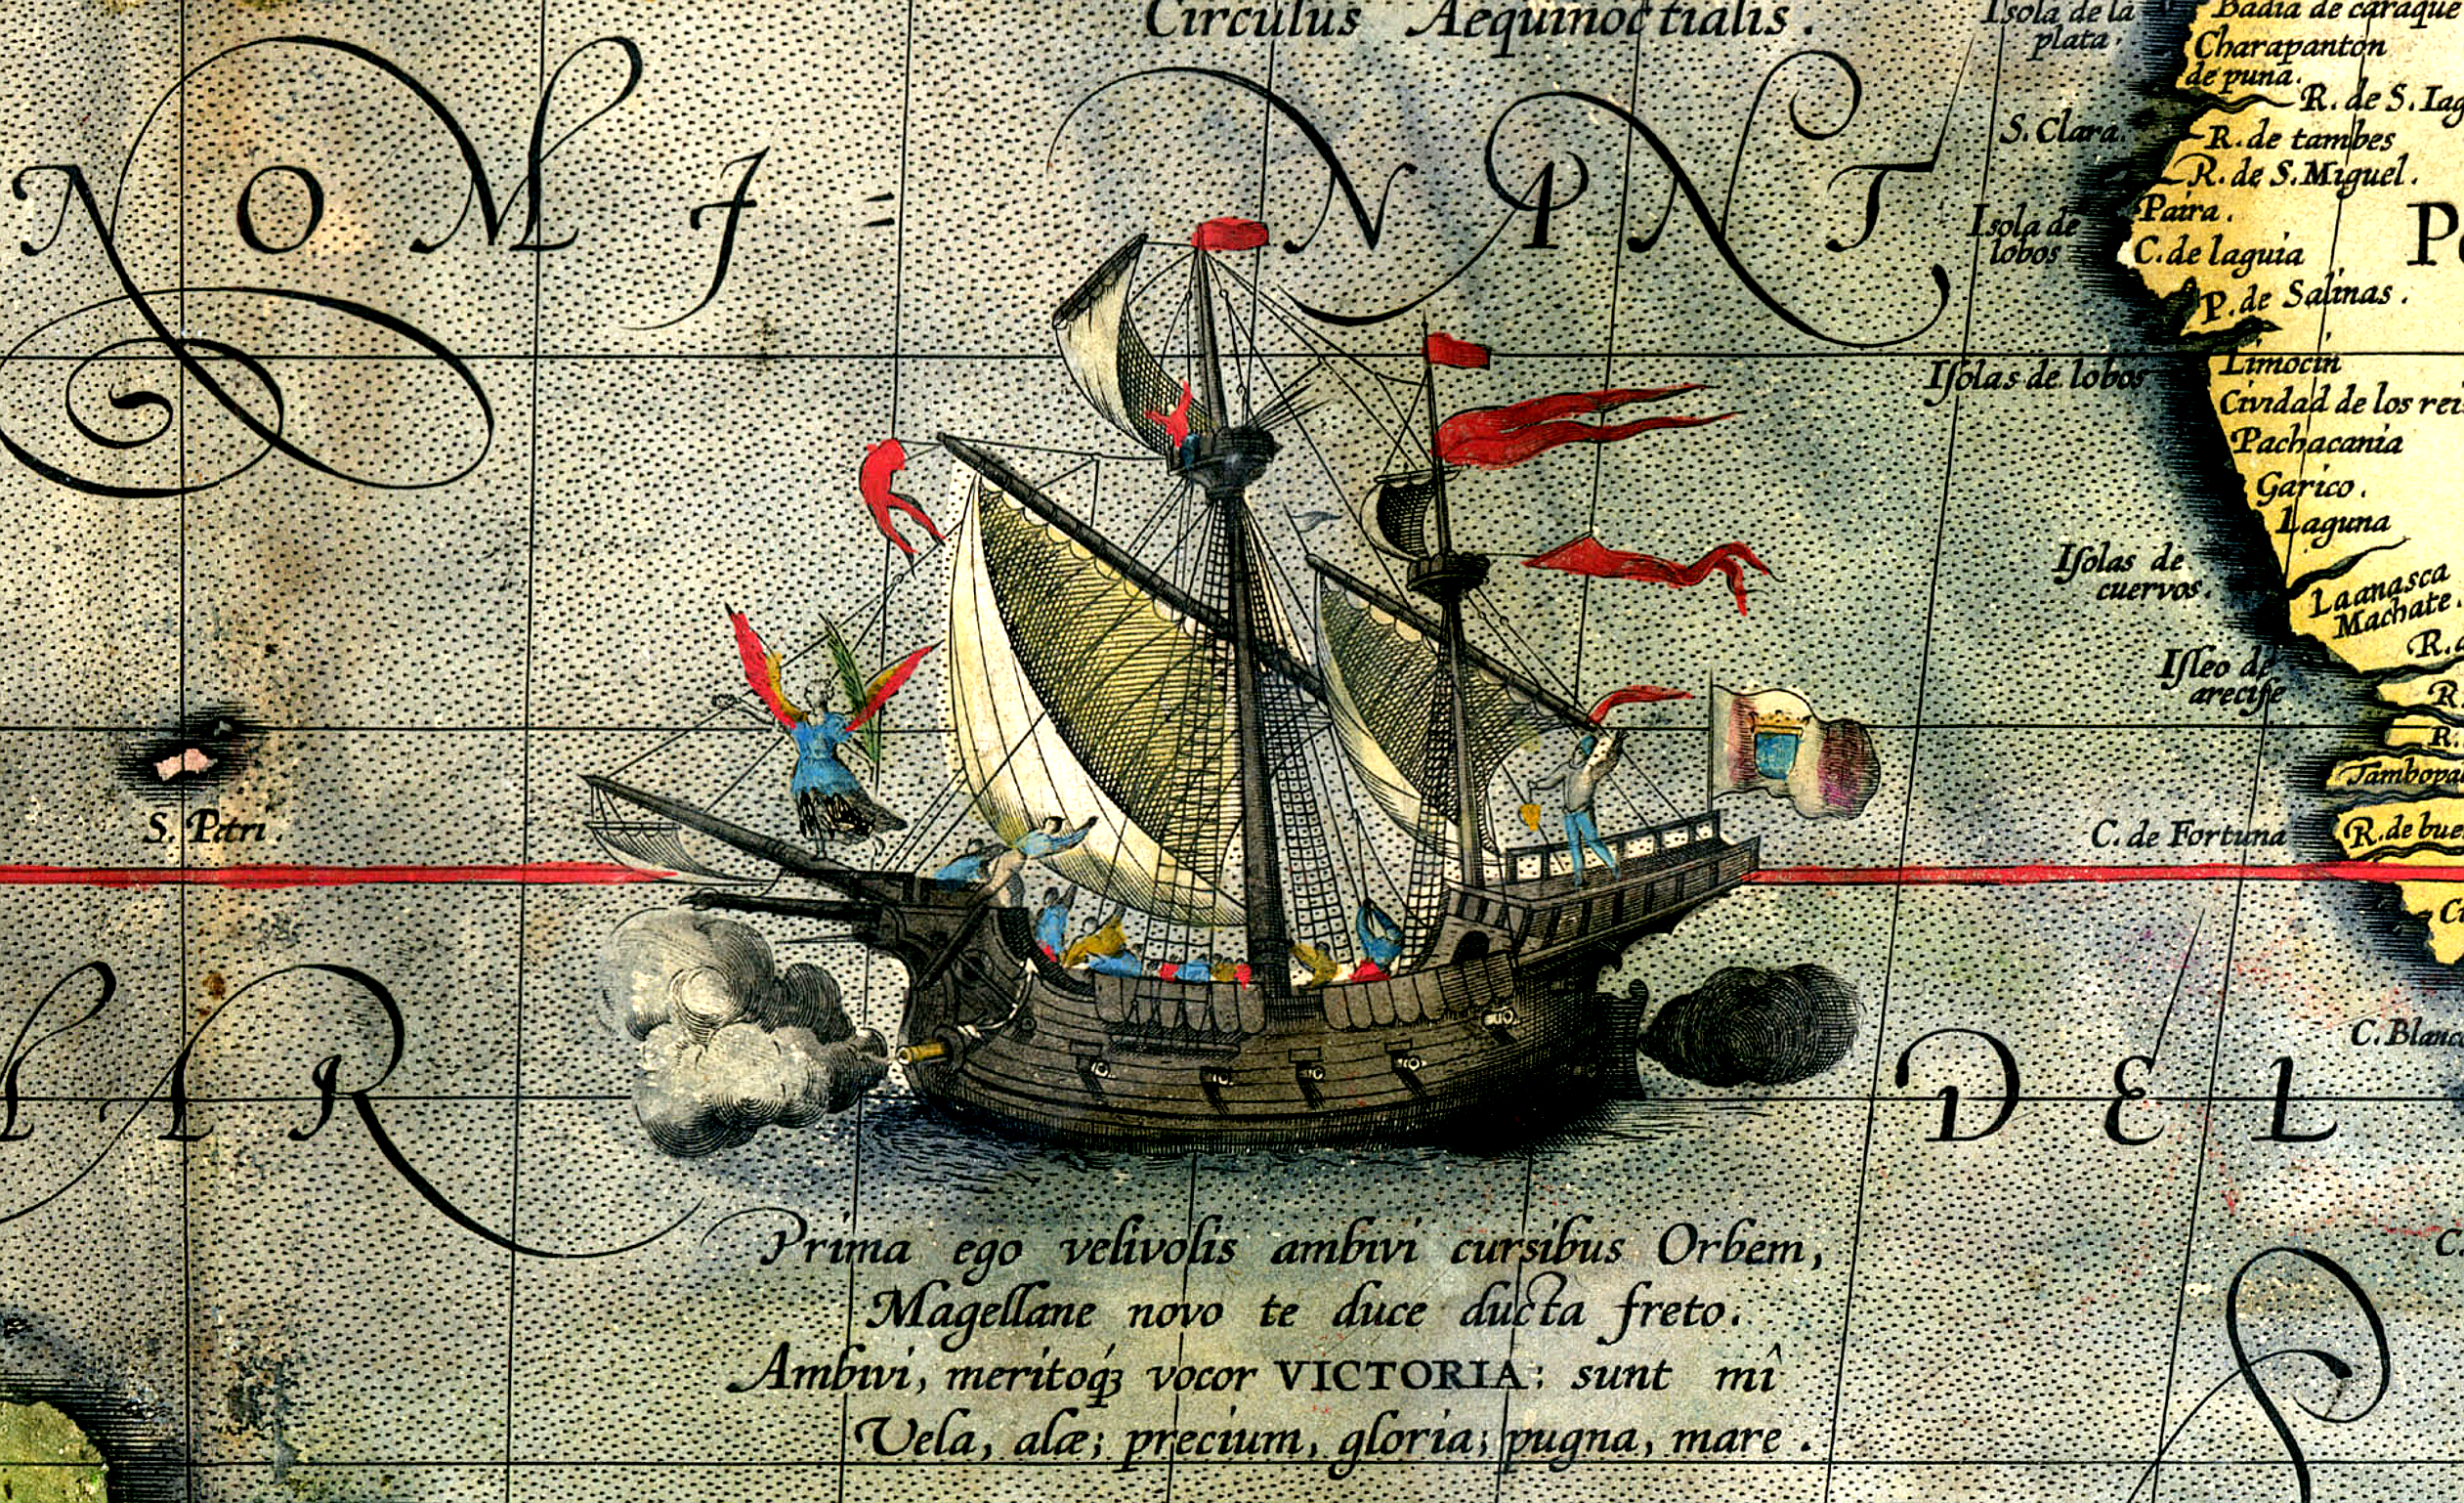 Detail of Magellan's Ship Victoria - Qulle: Wiki Commons